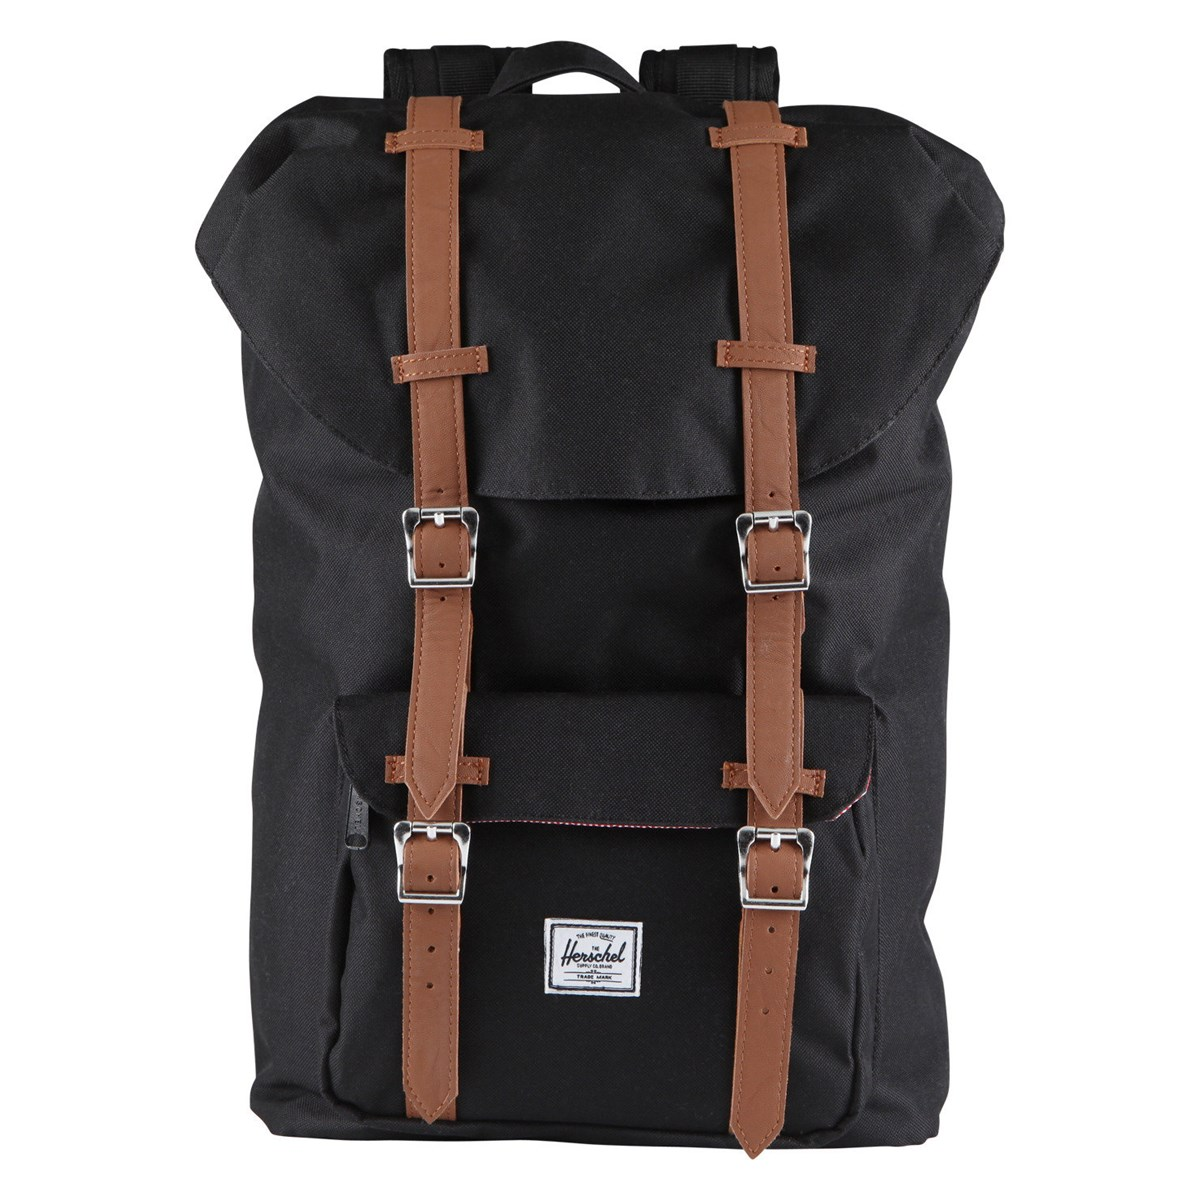 Little America Mid Volume Backpack in Midnight Black